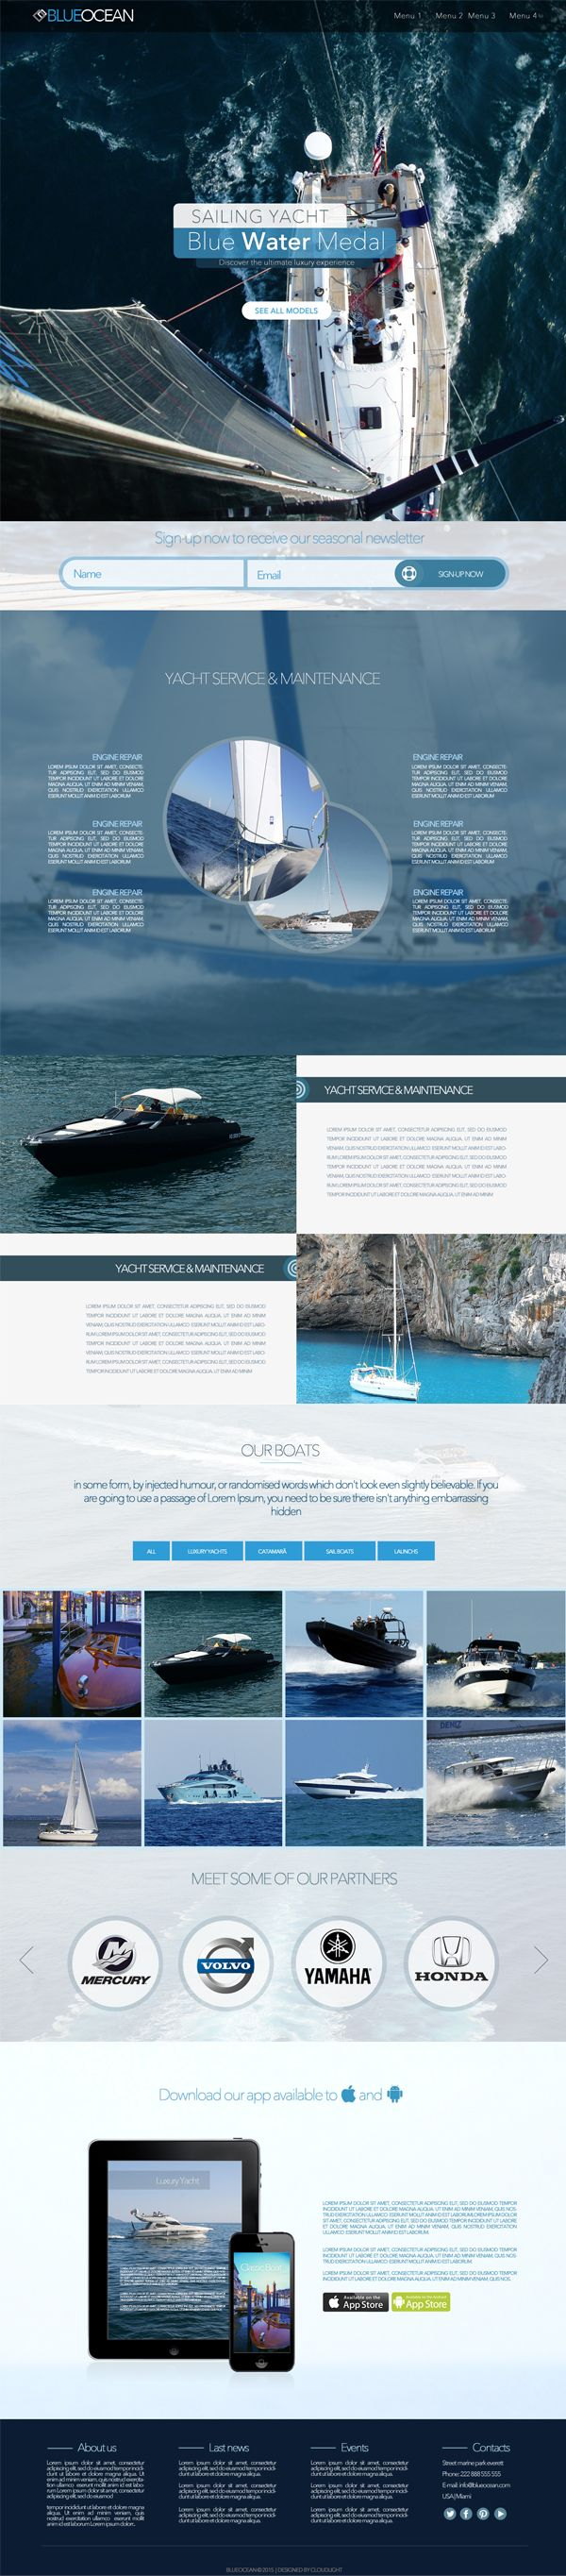 BlueOcean - One Page HTML Template Screenshot 1